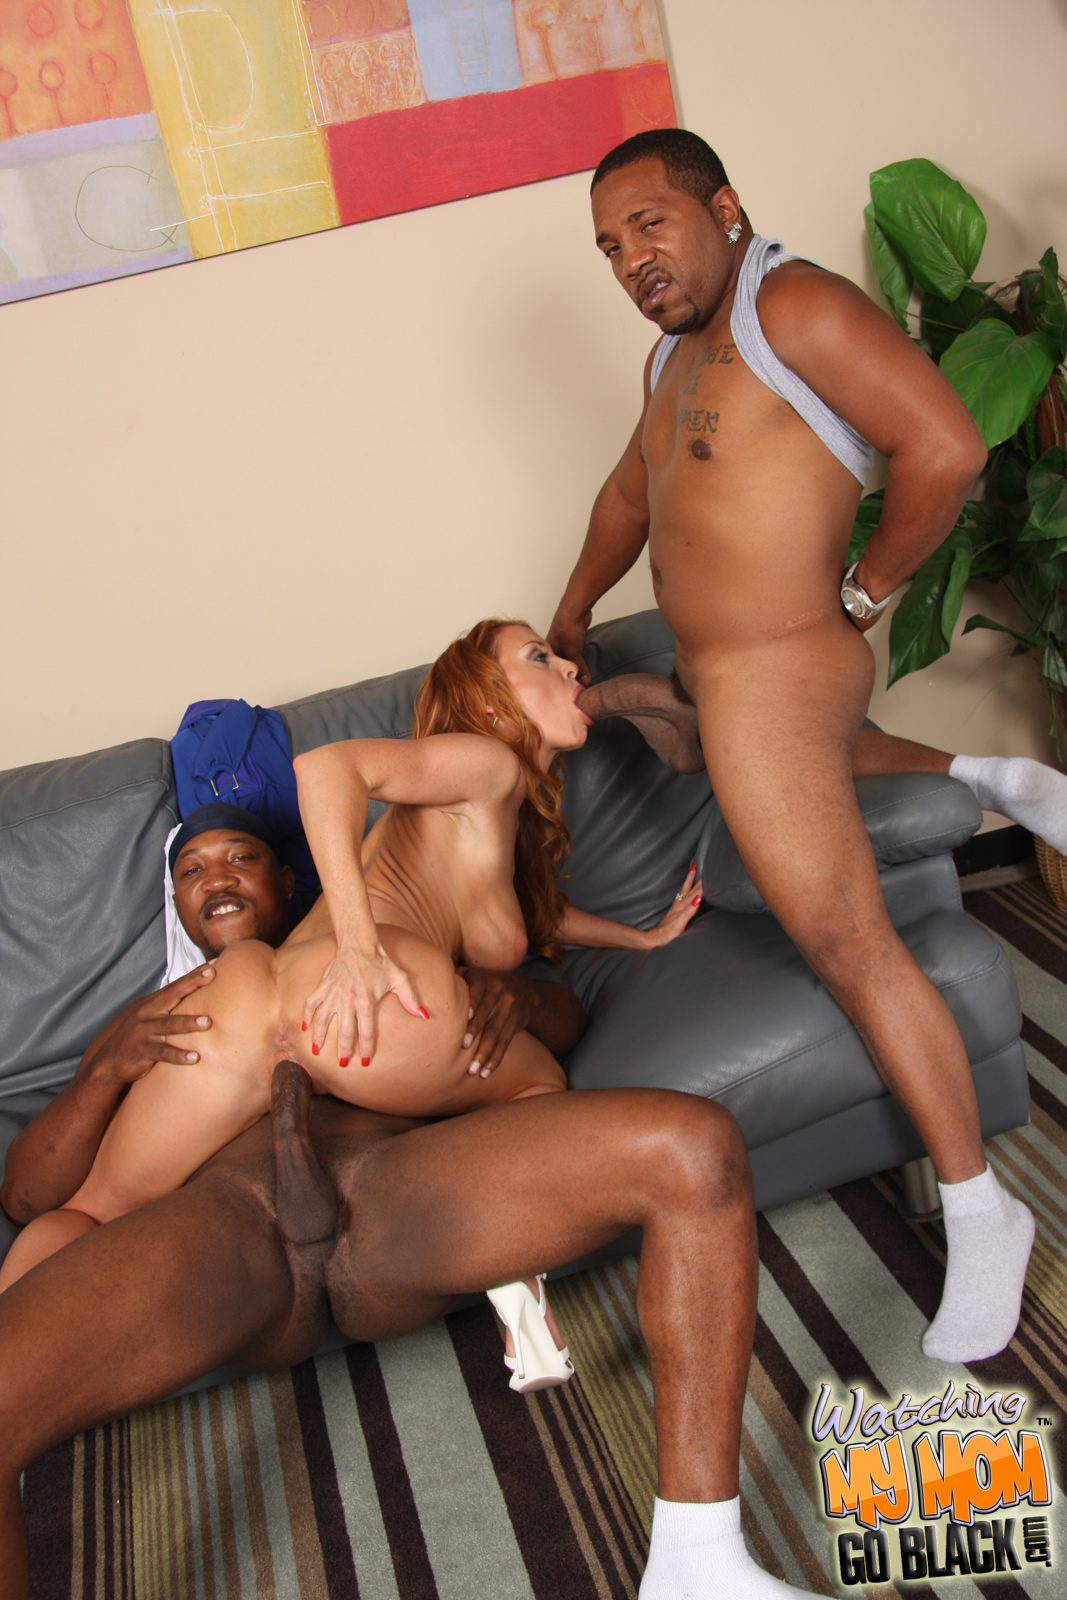 Topic sorry, Milf naked with black men remarkable, rather